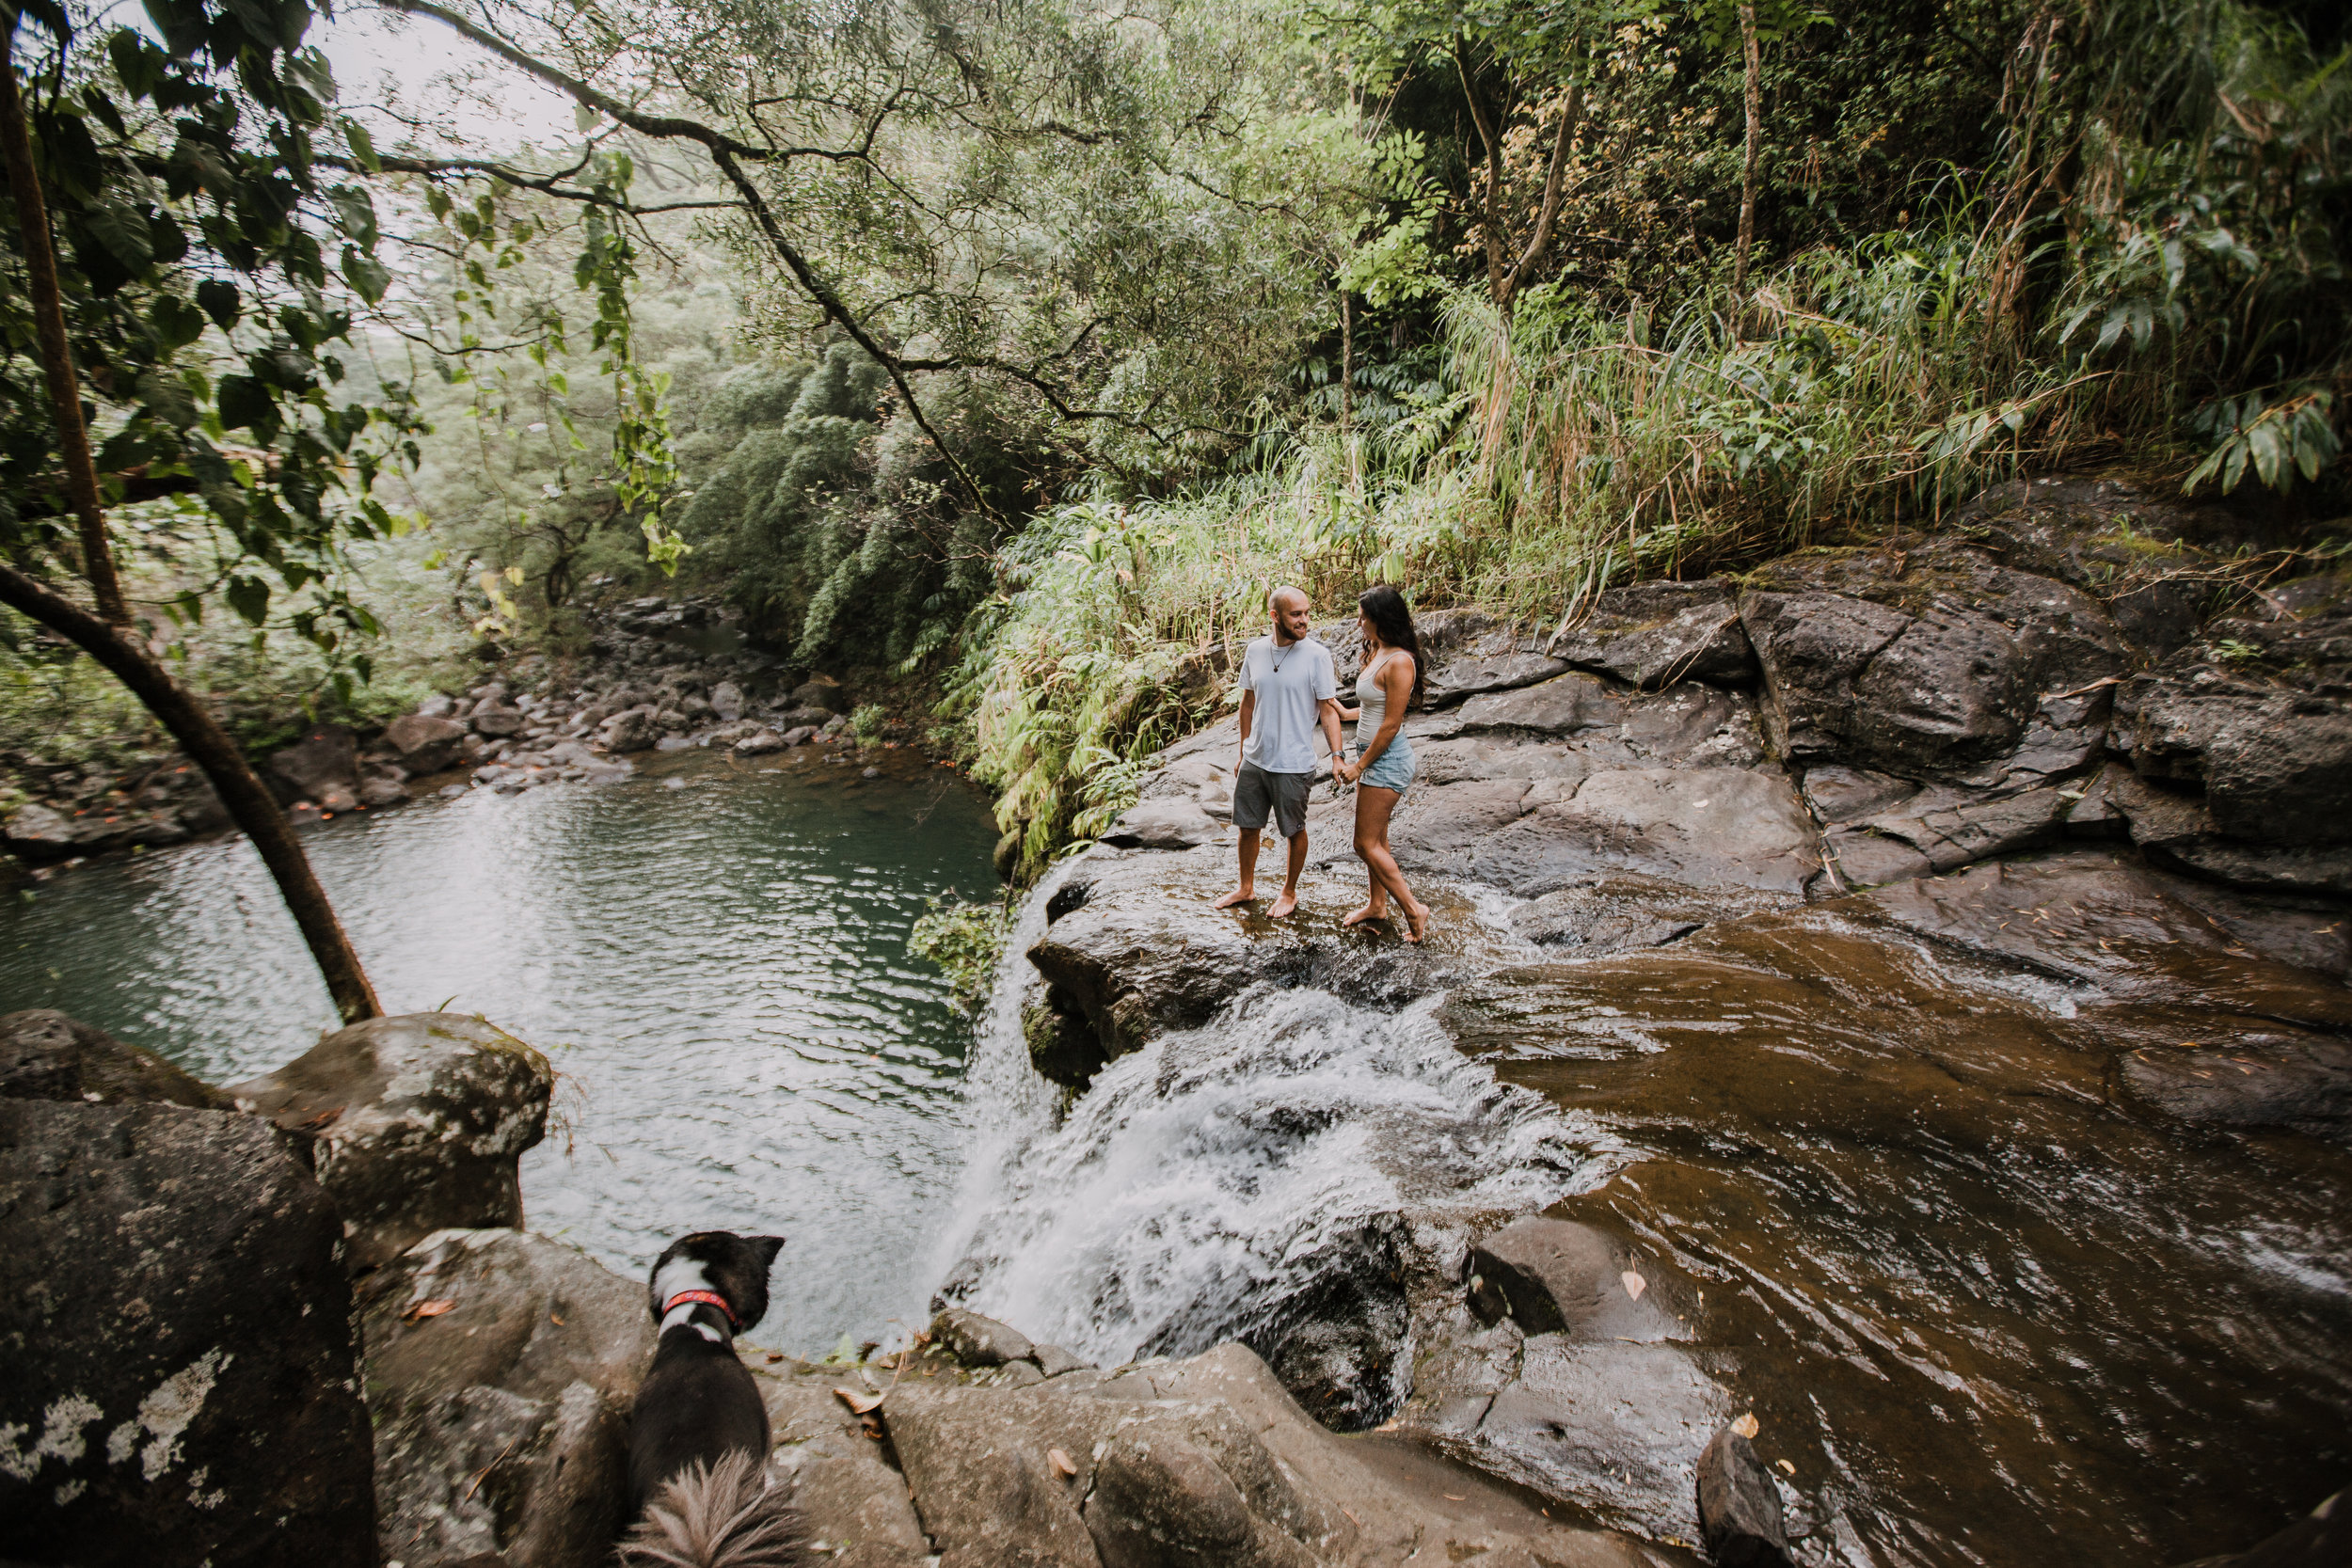 jungle couple, hawaii waterfall, road to hana, maui waterfall, hawaii wedding photographer, hawaii elopement photographer, maui wedding, maui engagements, maui elopement